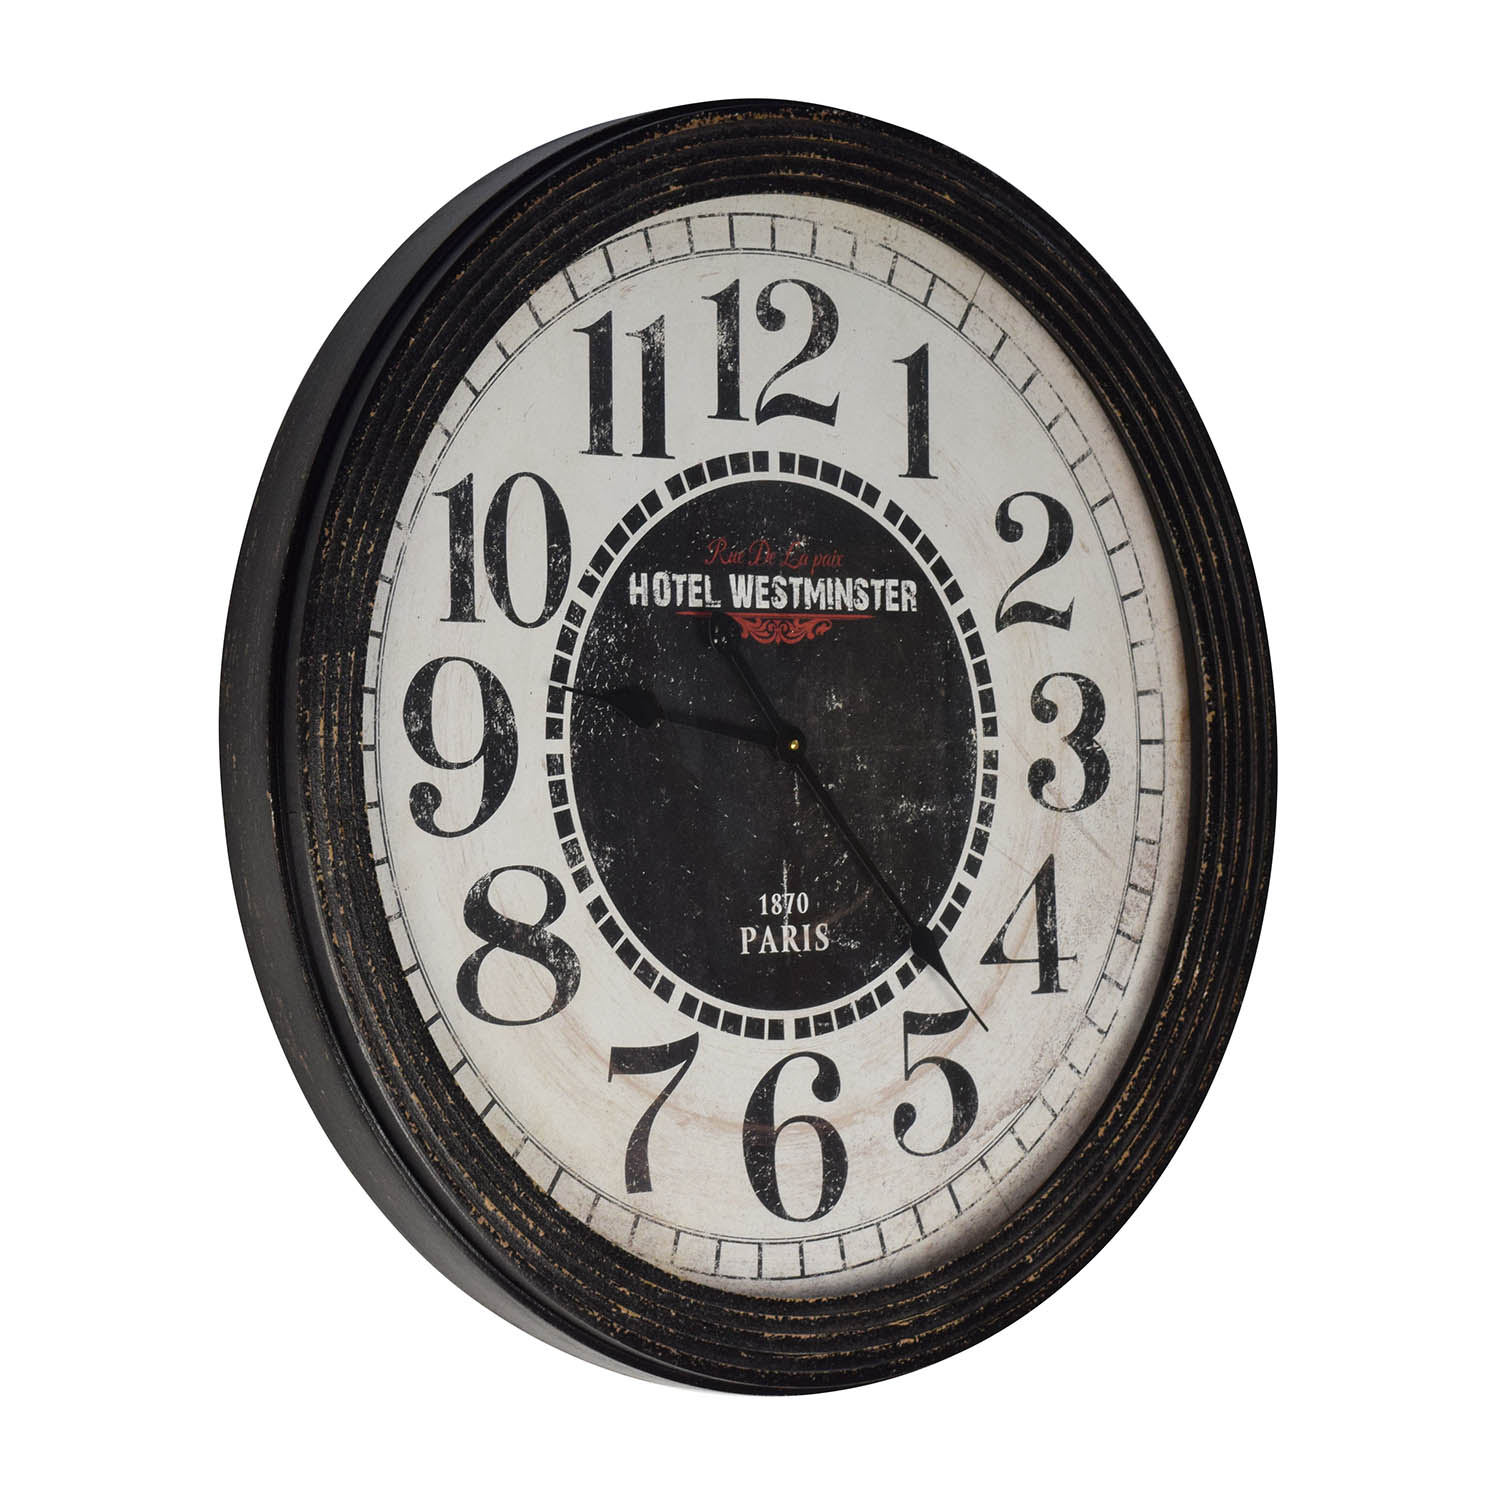 Hotel Westminster Hotel Westminster Round Decorative Clock Black / Red / White